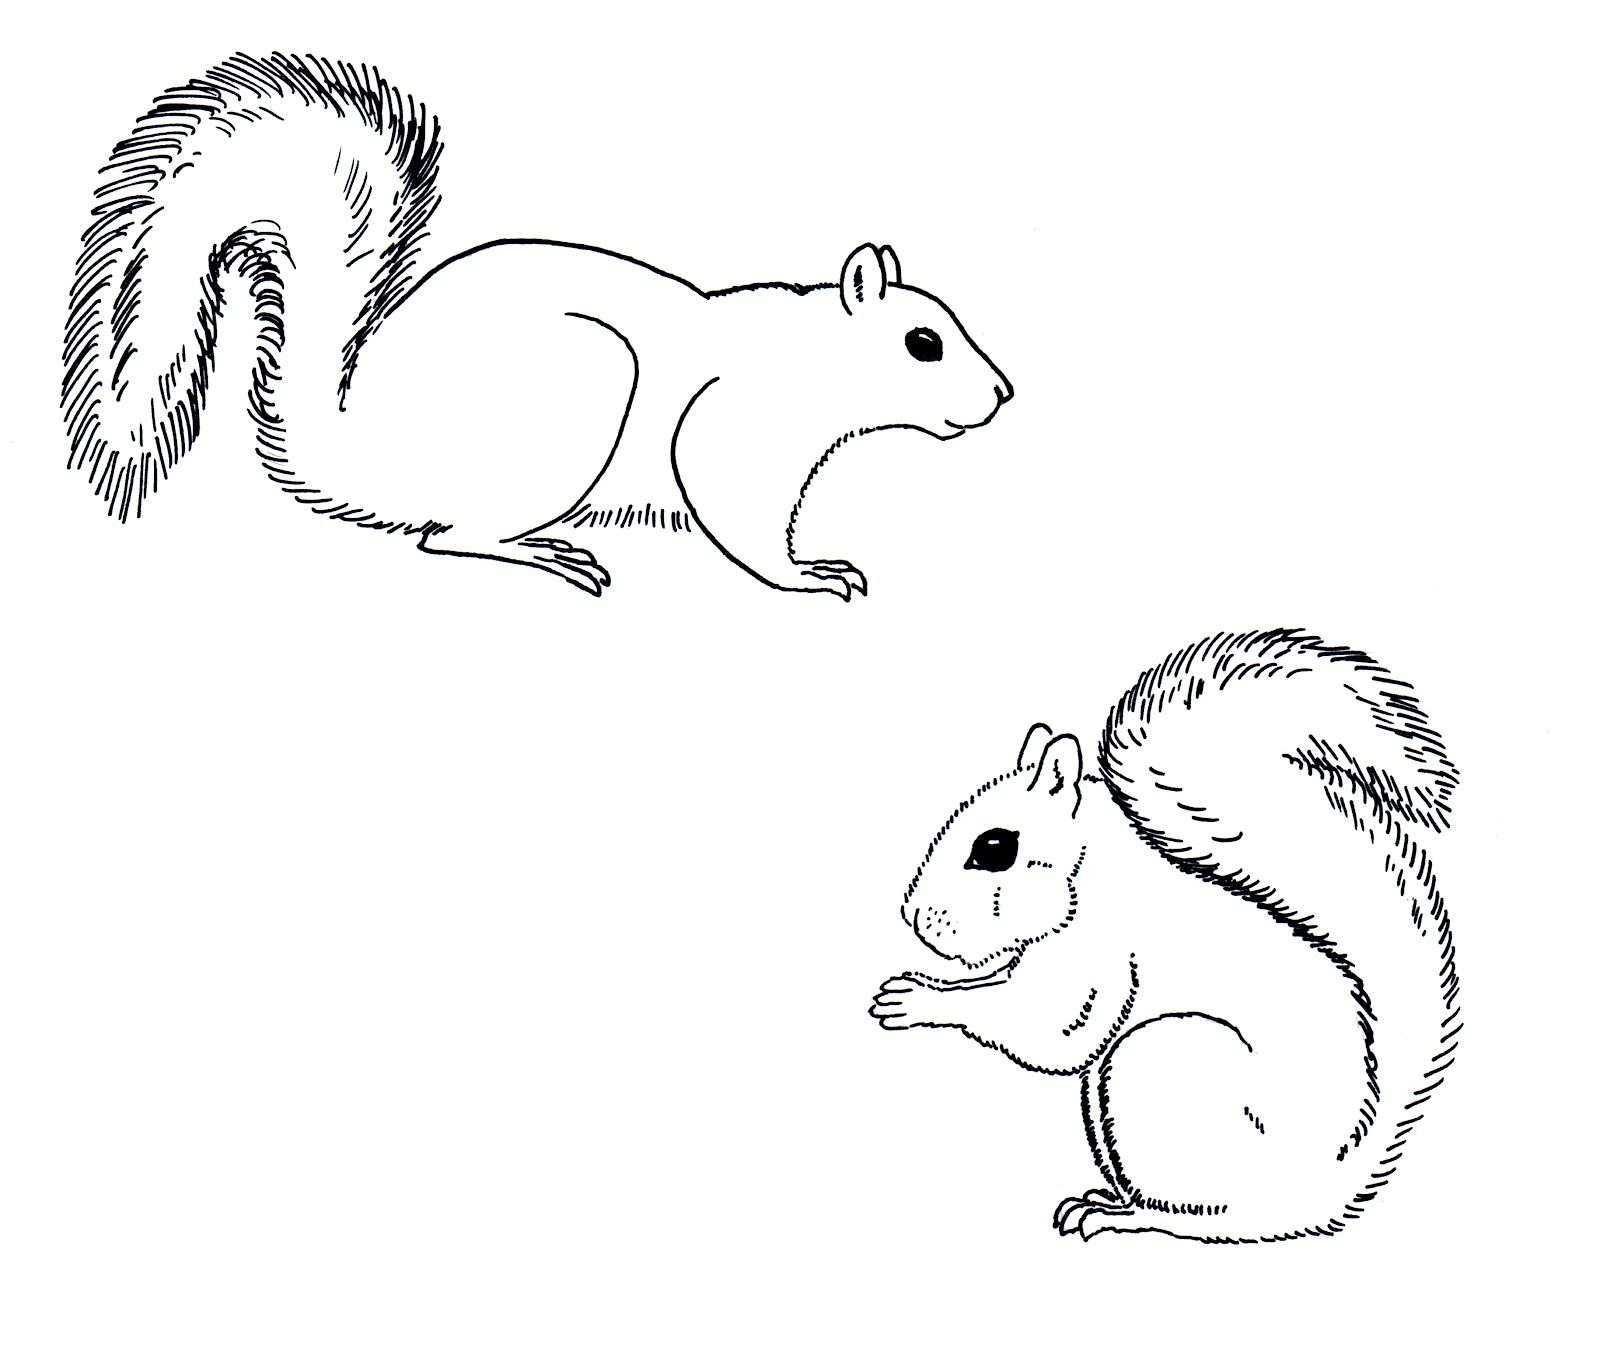 Line Drawing Squirrel : Squirrel line art google search animal vectors pinterest